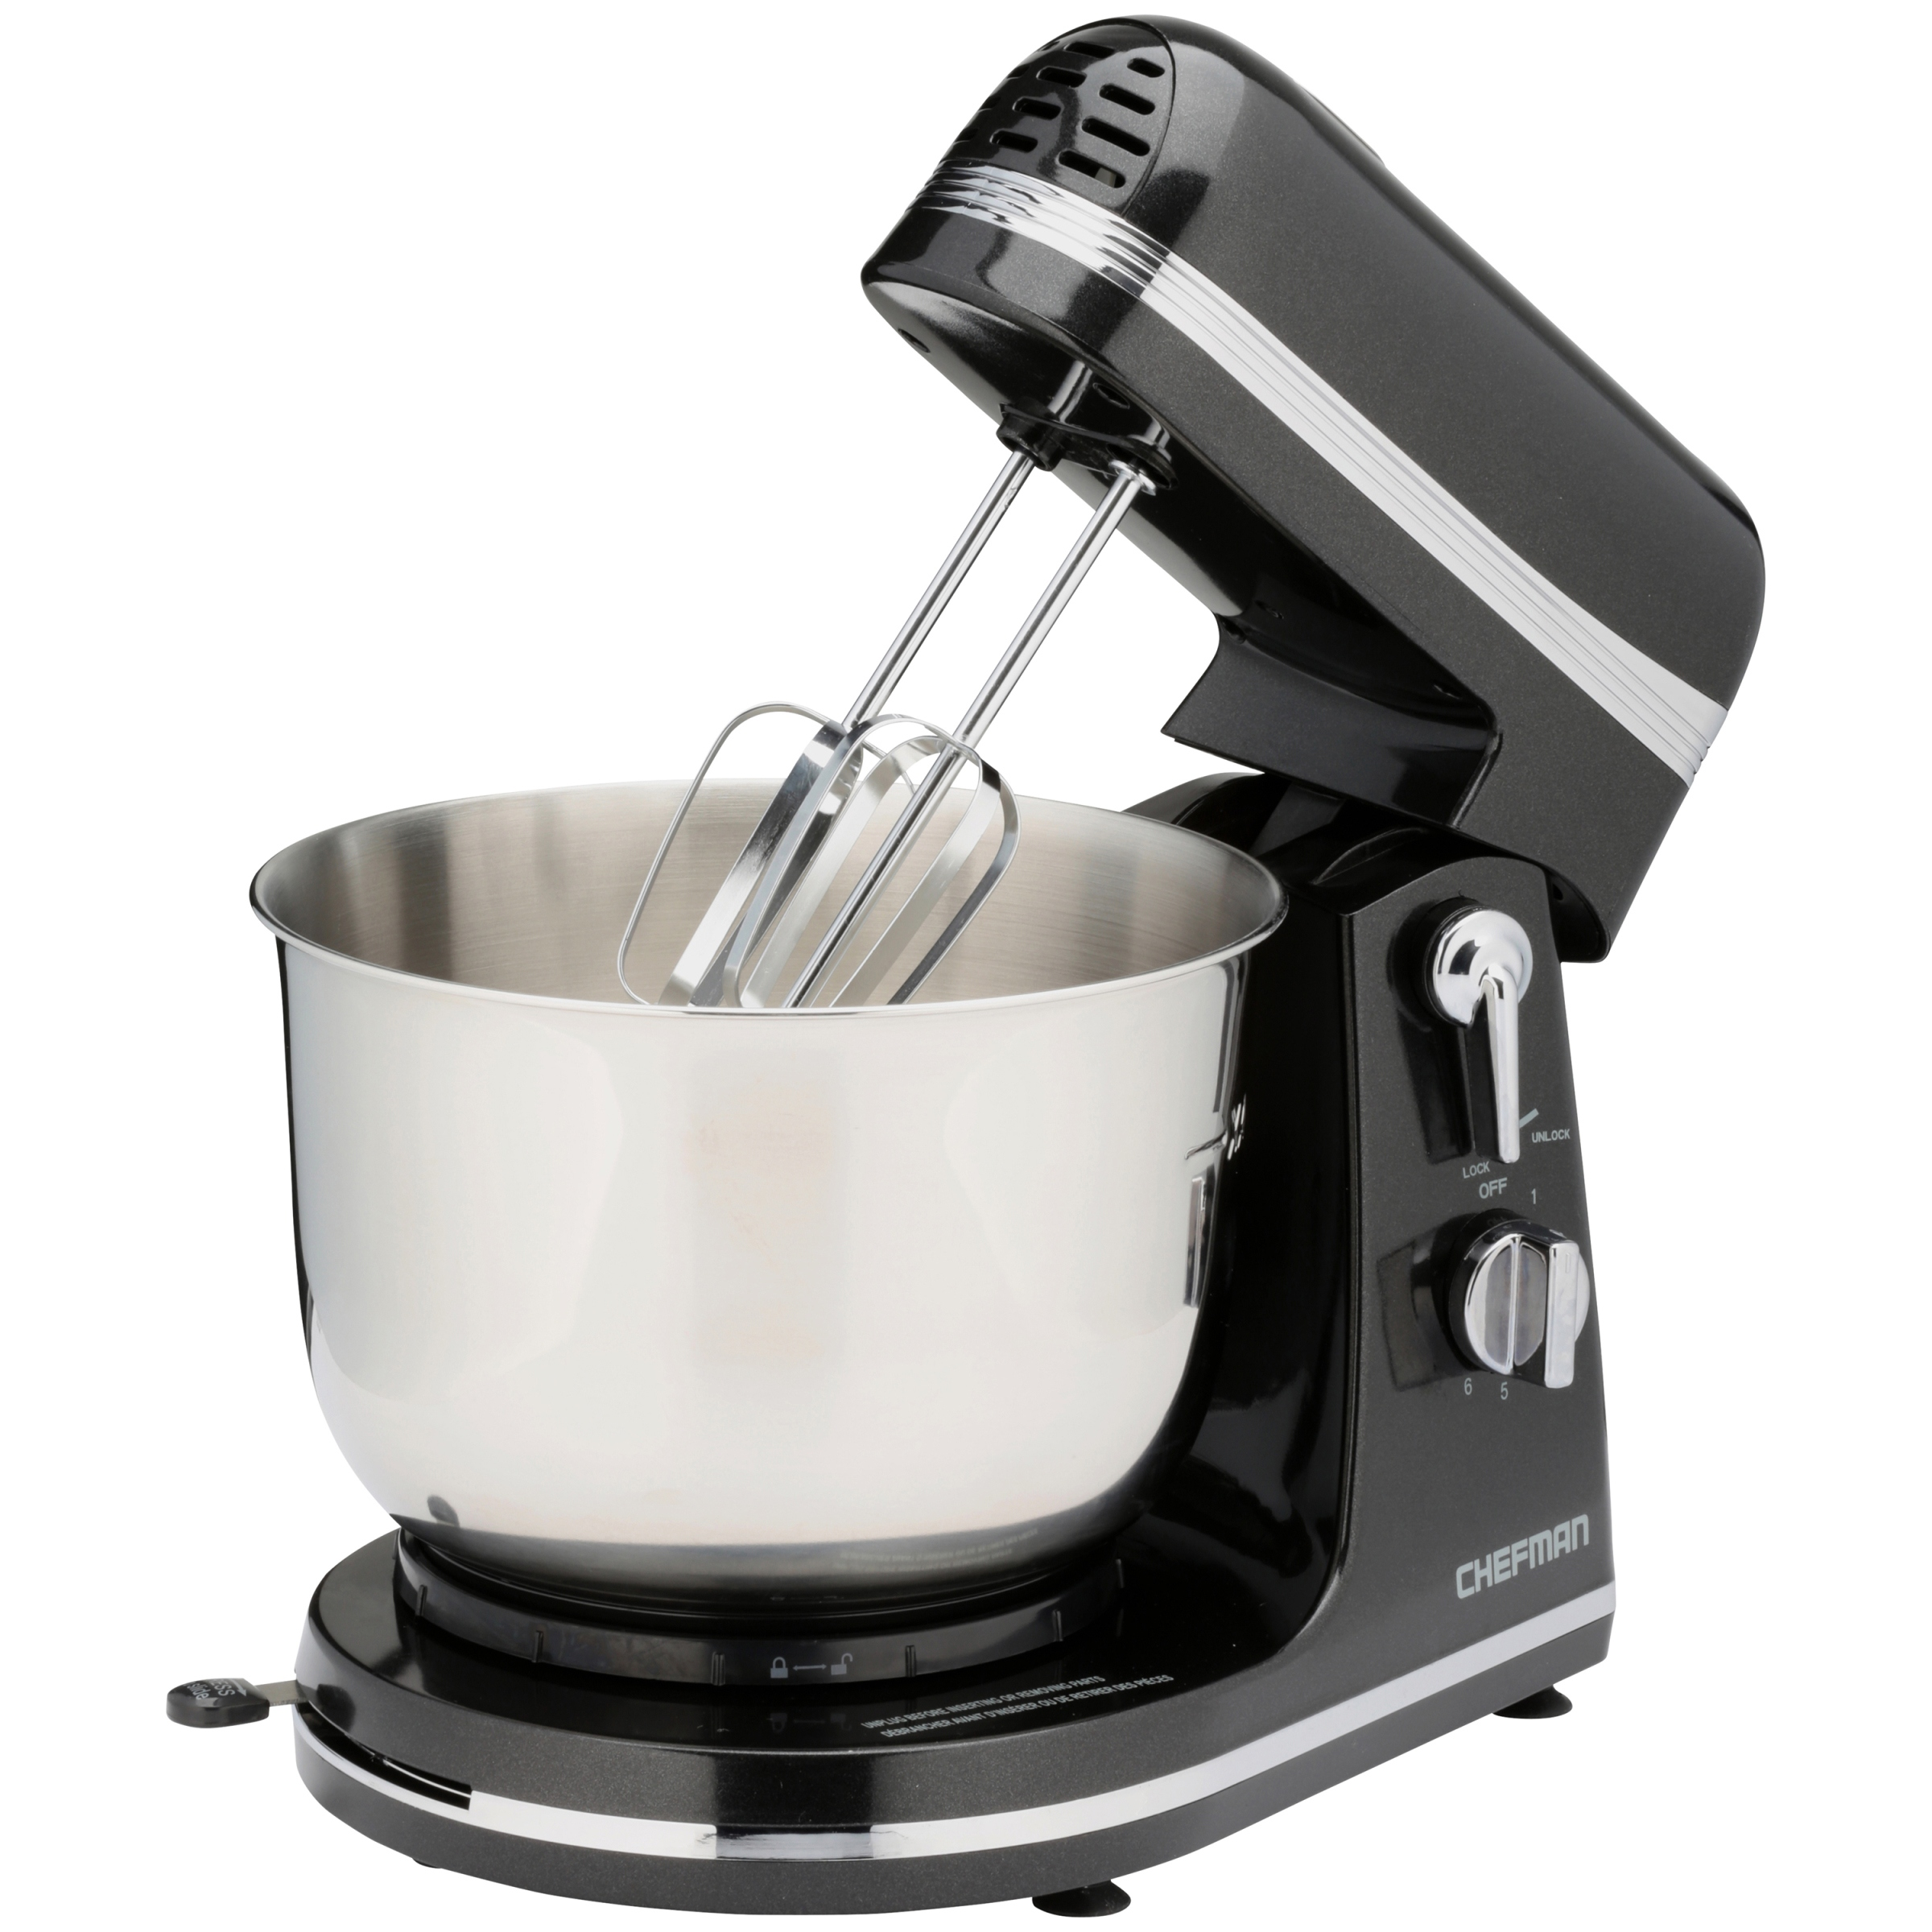 Chefman Ultra-Power Stand Mixer with Stainless Steel Bowl by Chefman